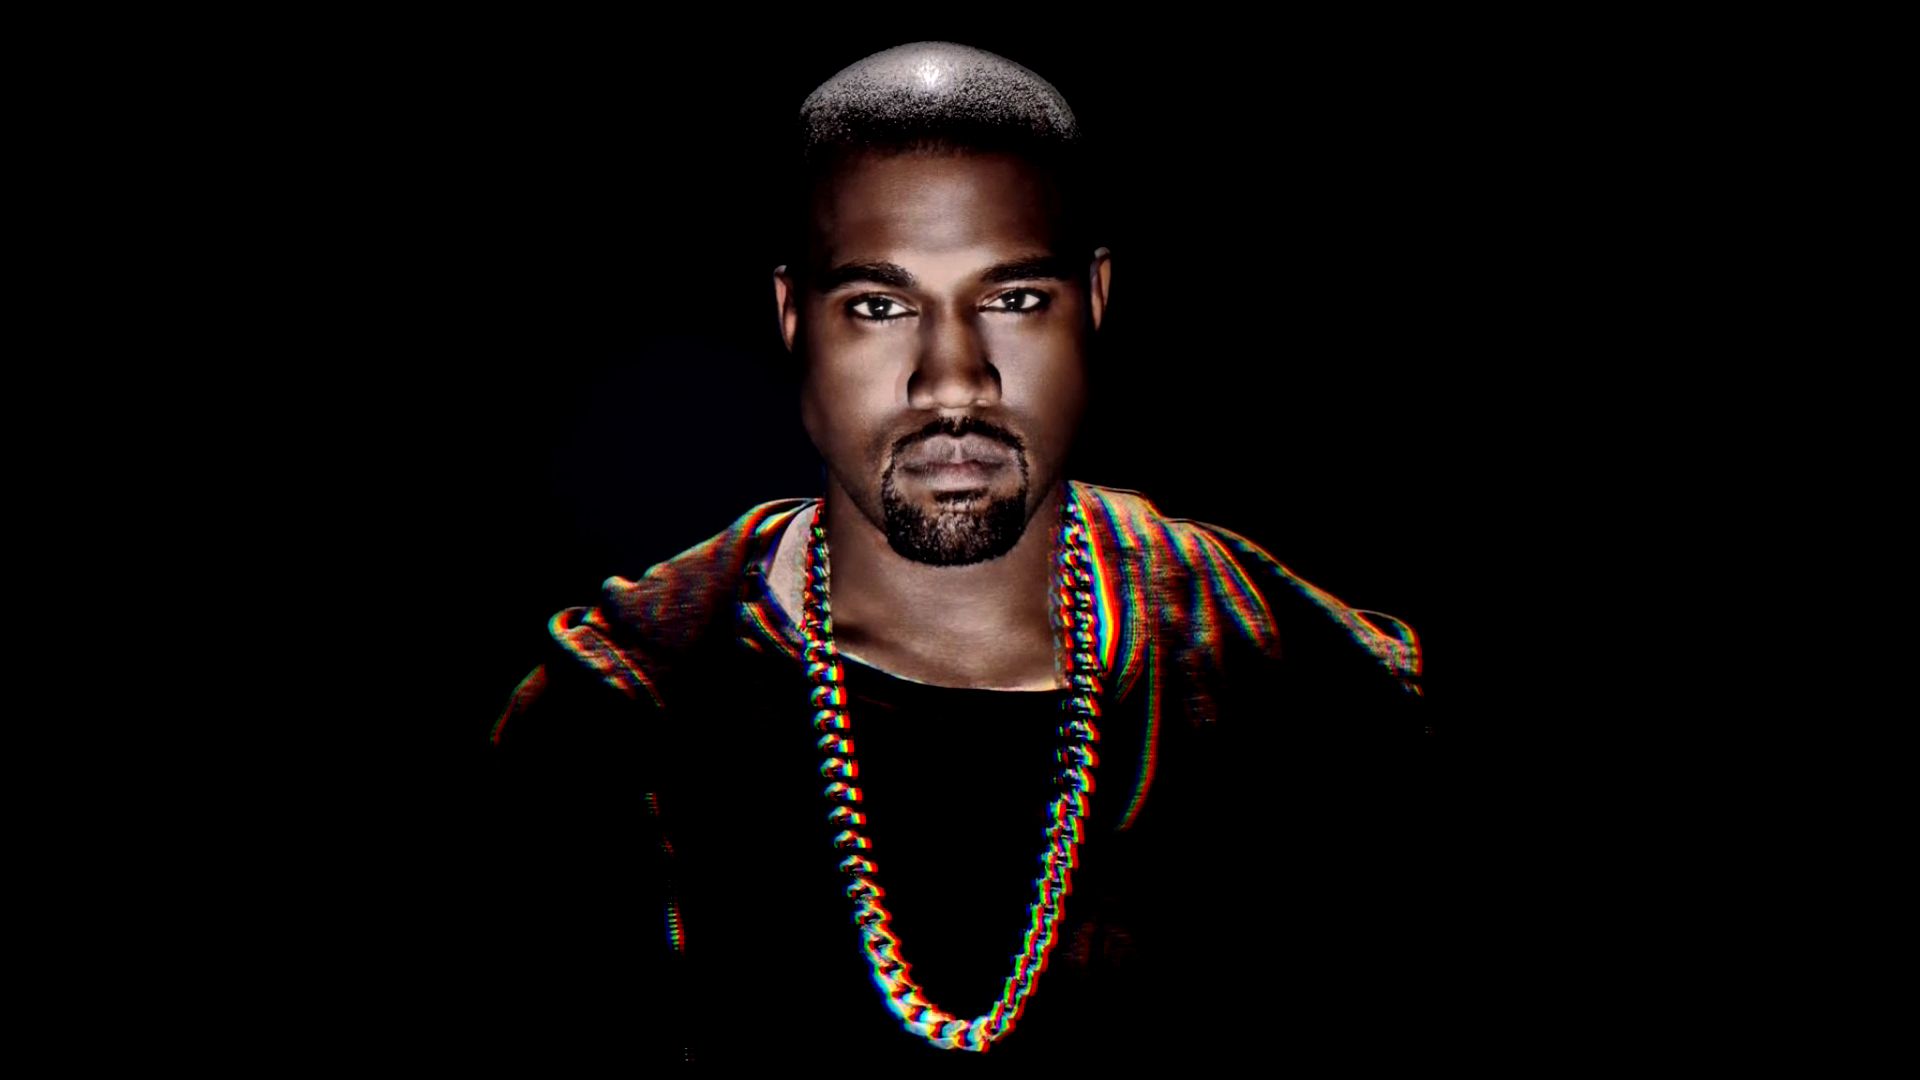 Kanye West Wallpaper HD